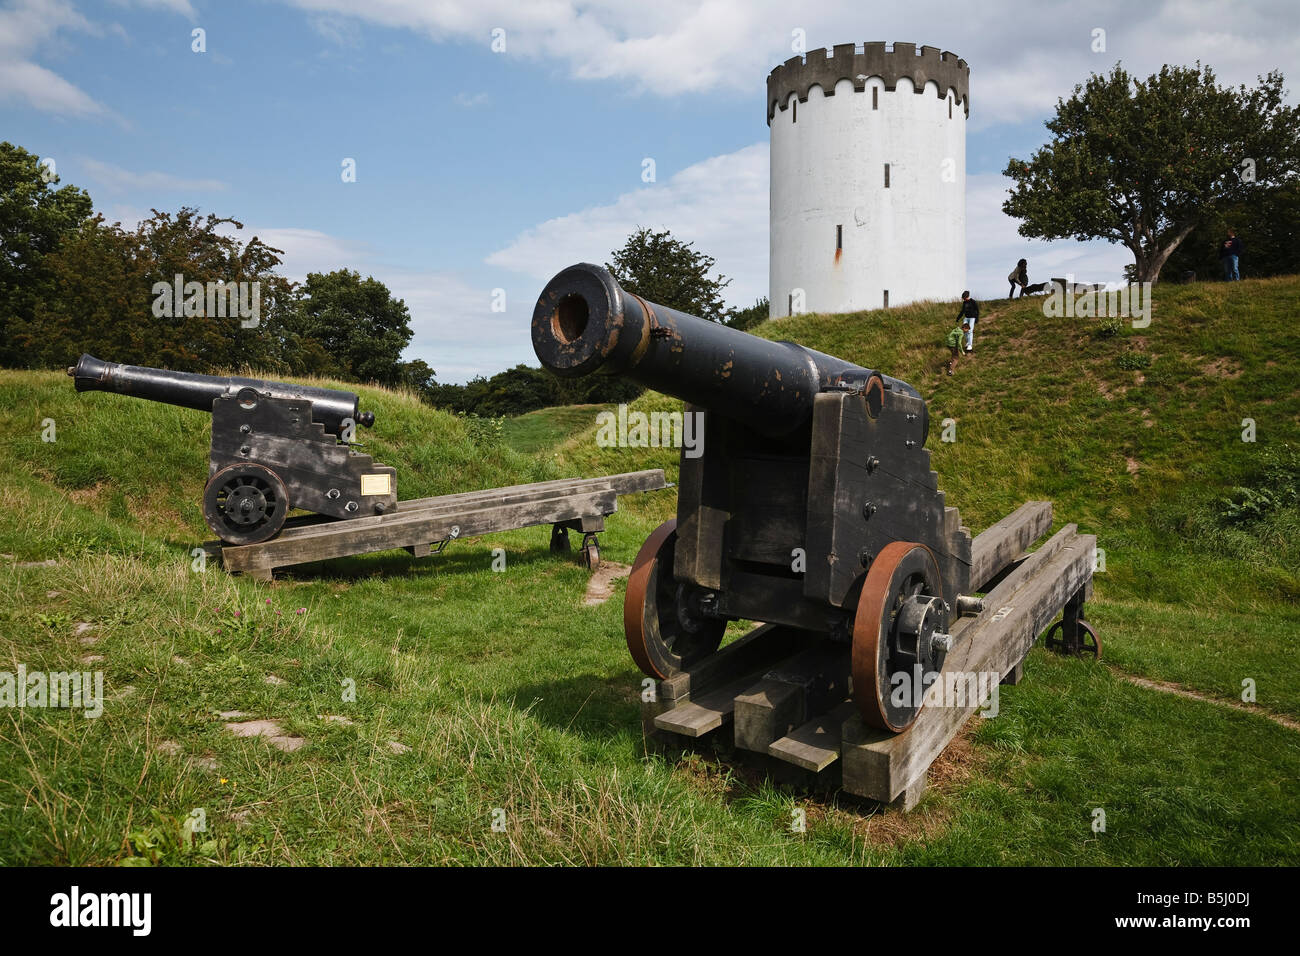 Cannons and the water tower at Prins Georgs Bastion, Fredericia, Jutland, Denmark - Stock Image